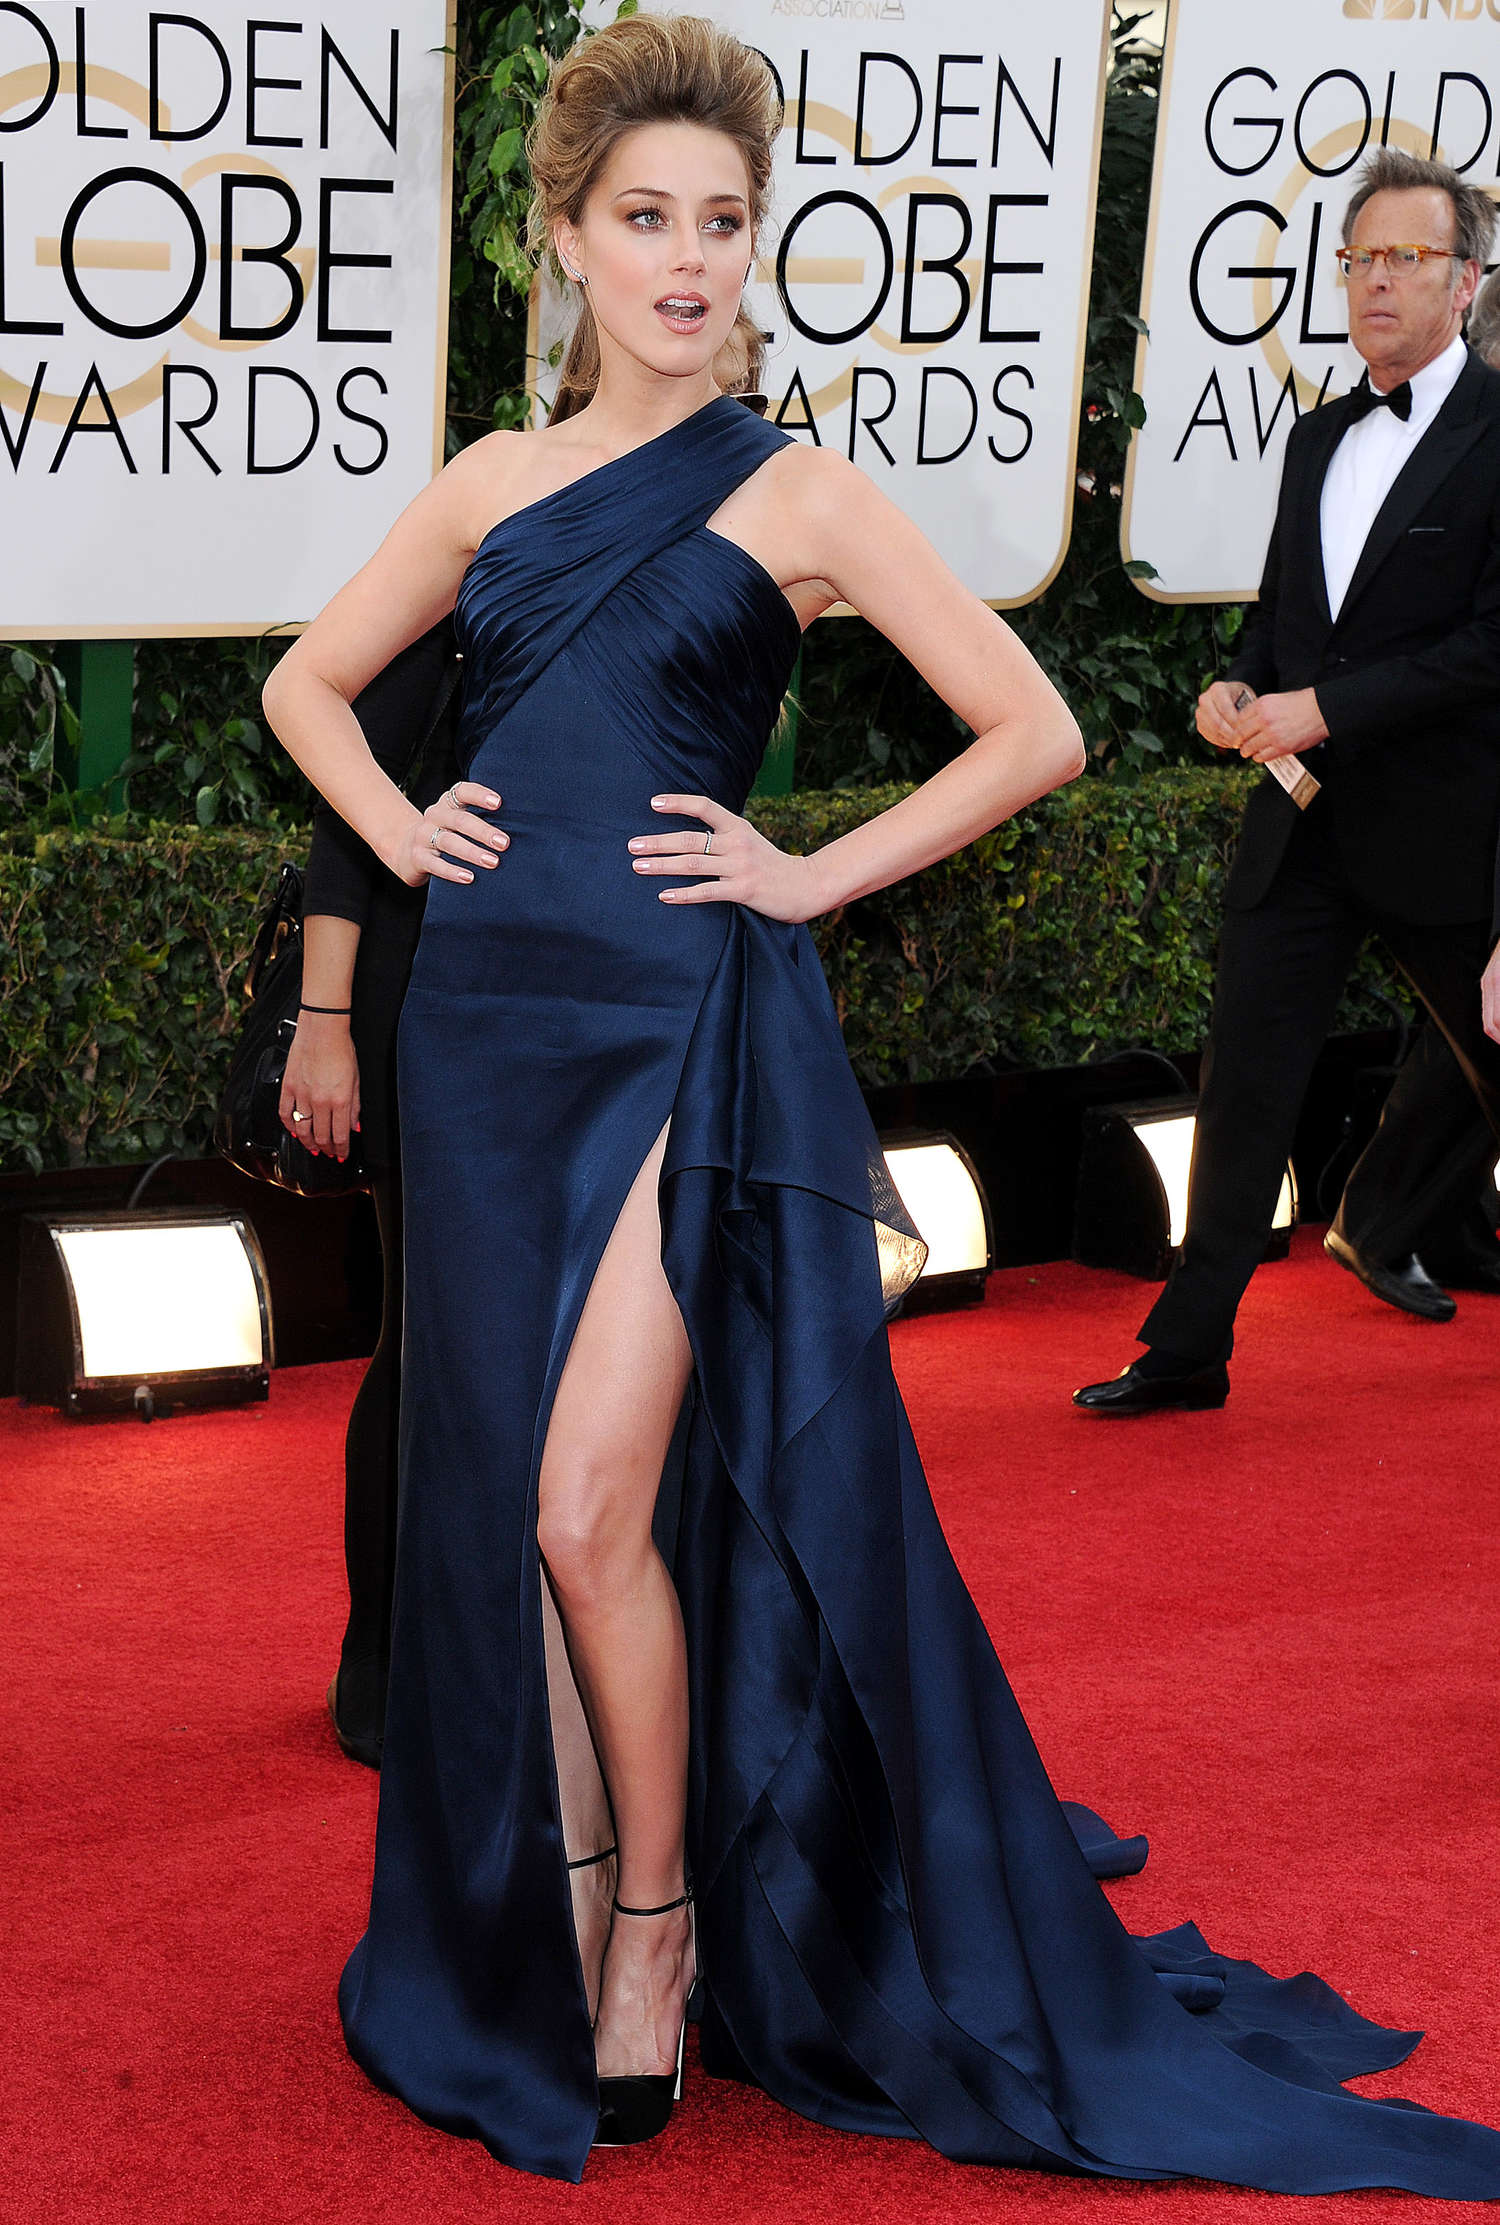 Amber Heard 2014 : Amber Heard: Golden Globe 2014 Awards -33